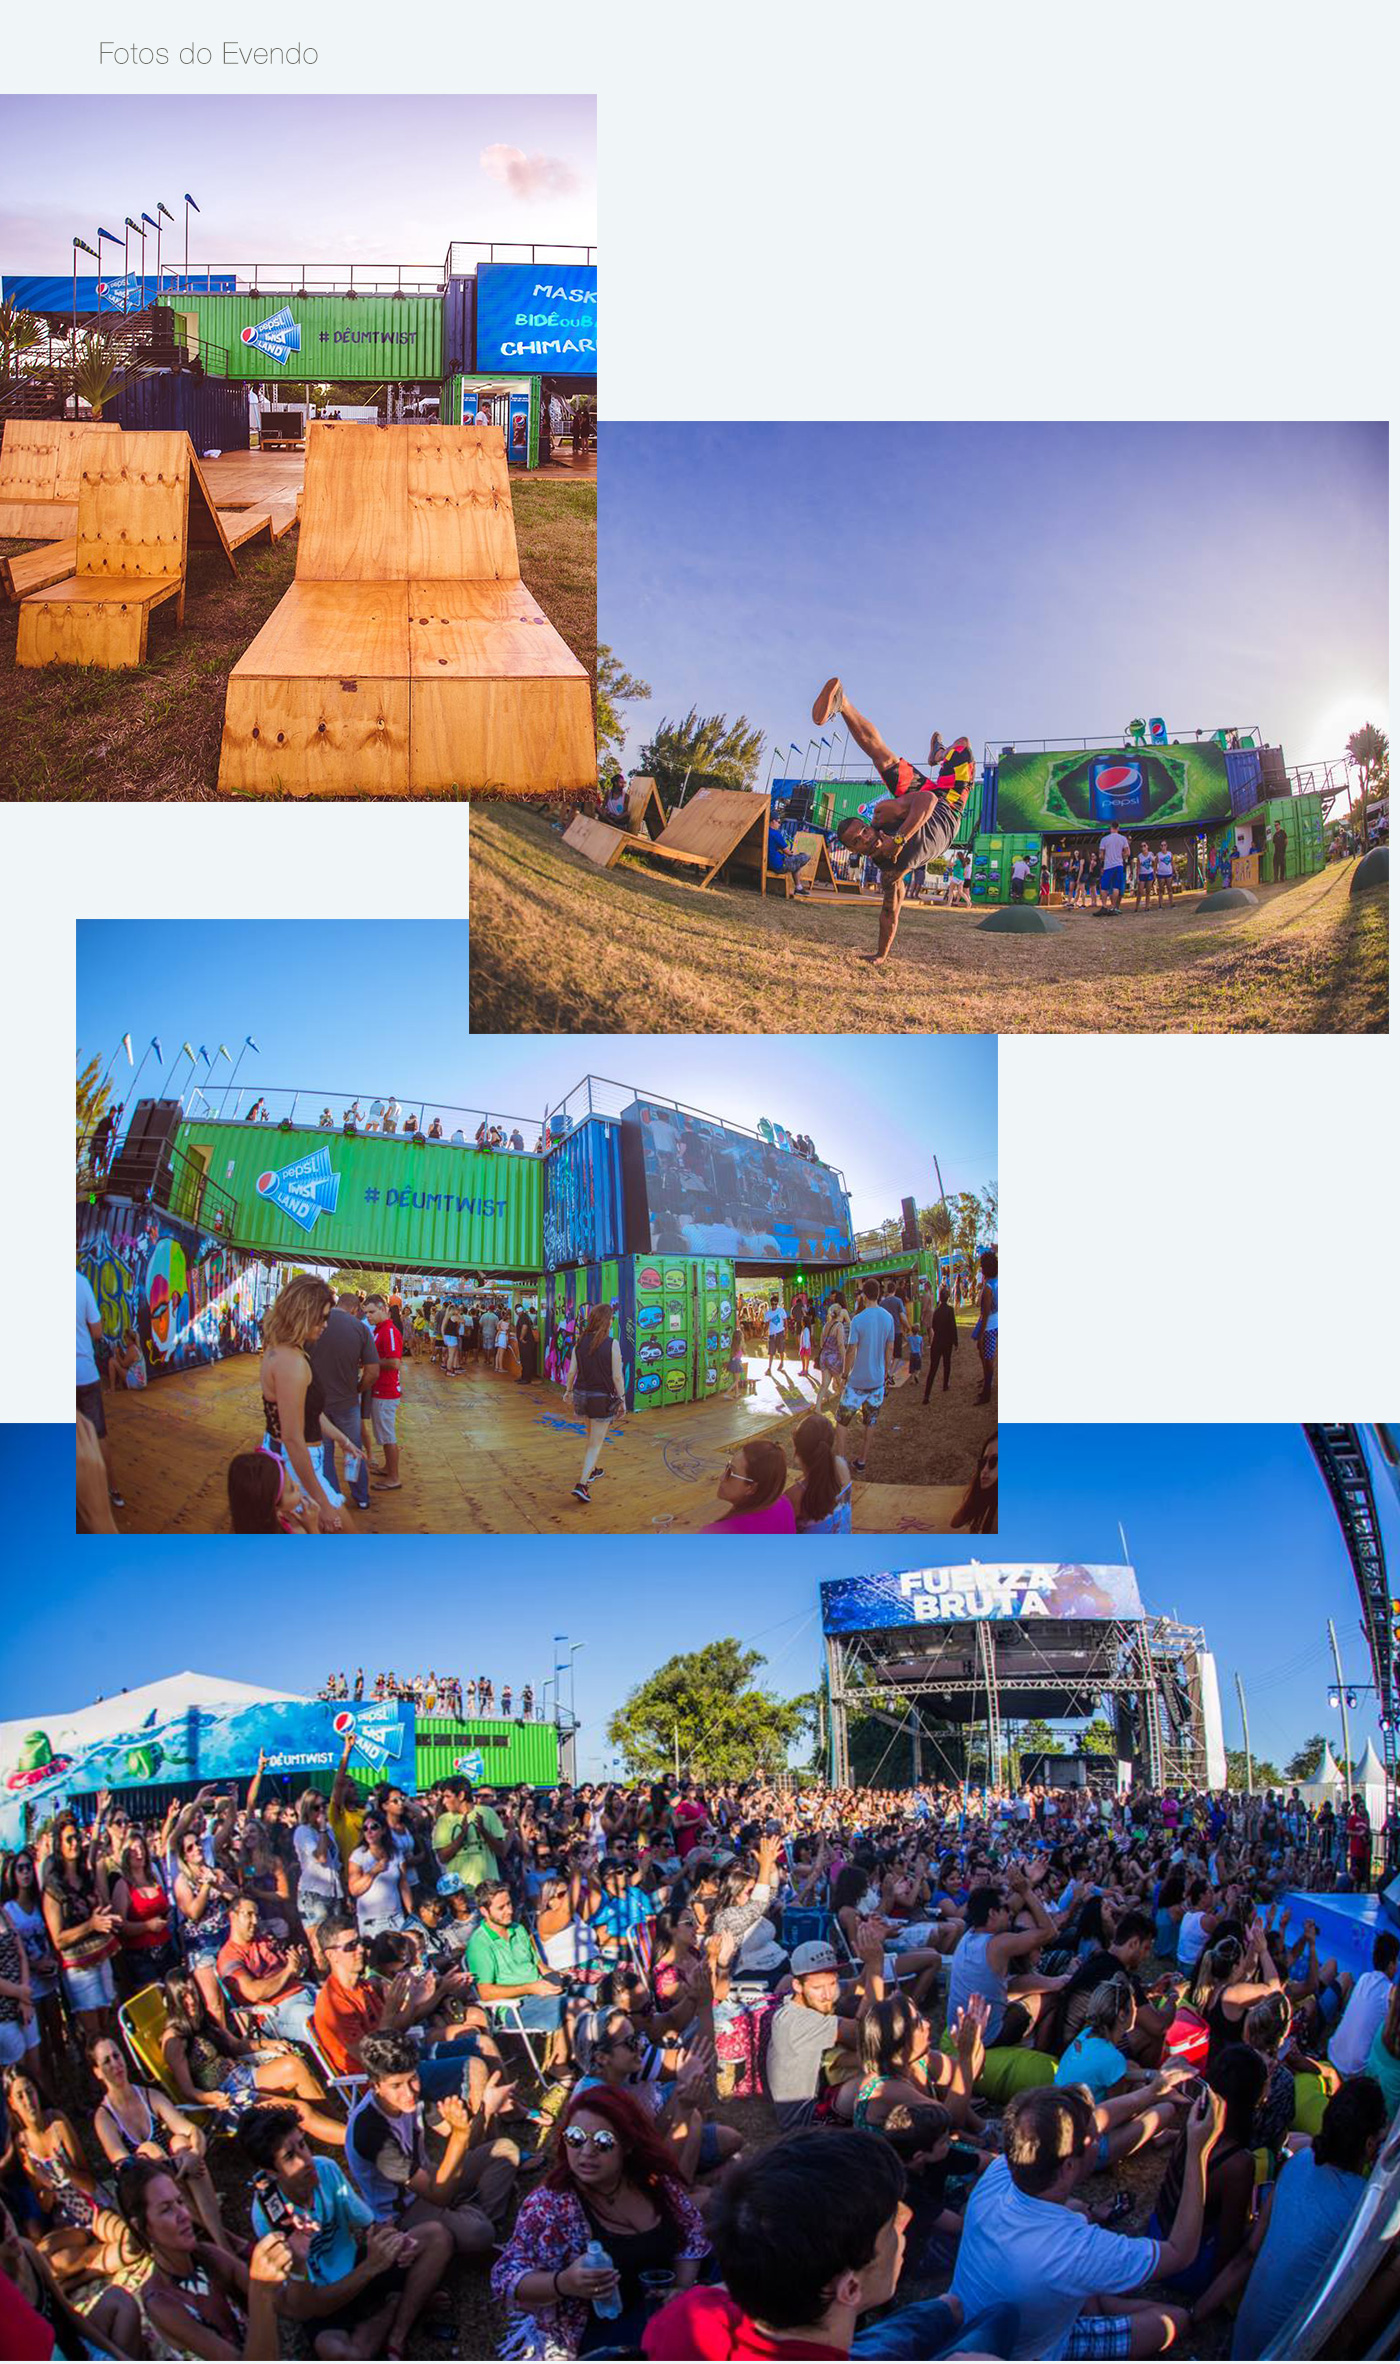 photo composition music festival containers beach Tree  lemon Fuerza Bruta making of